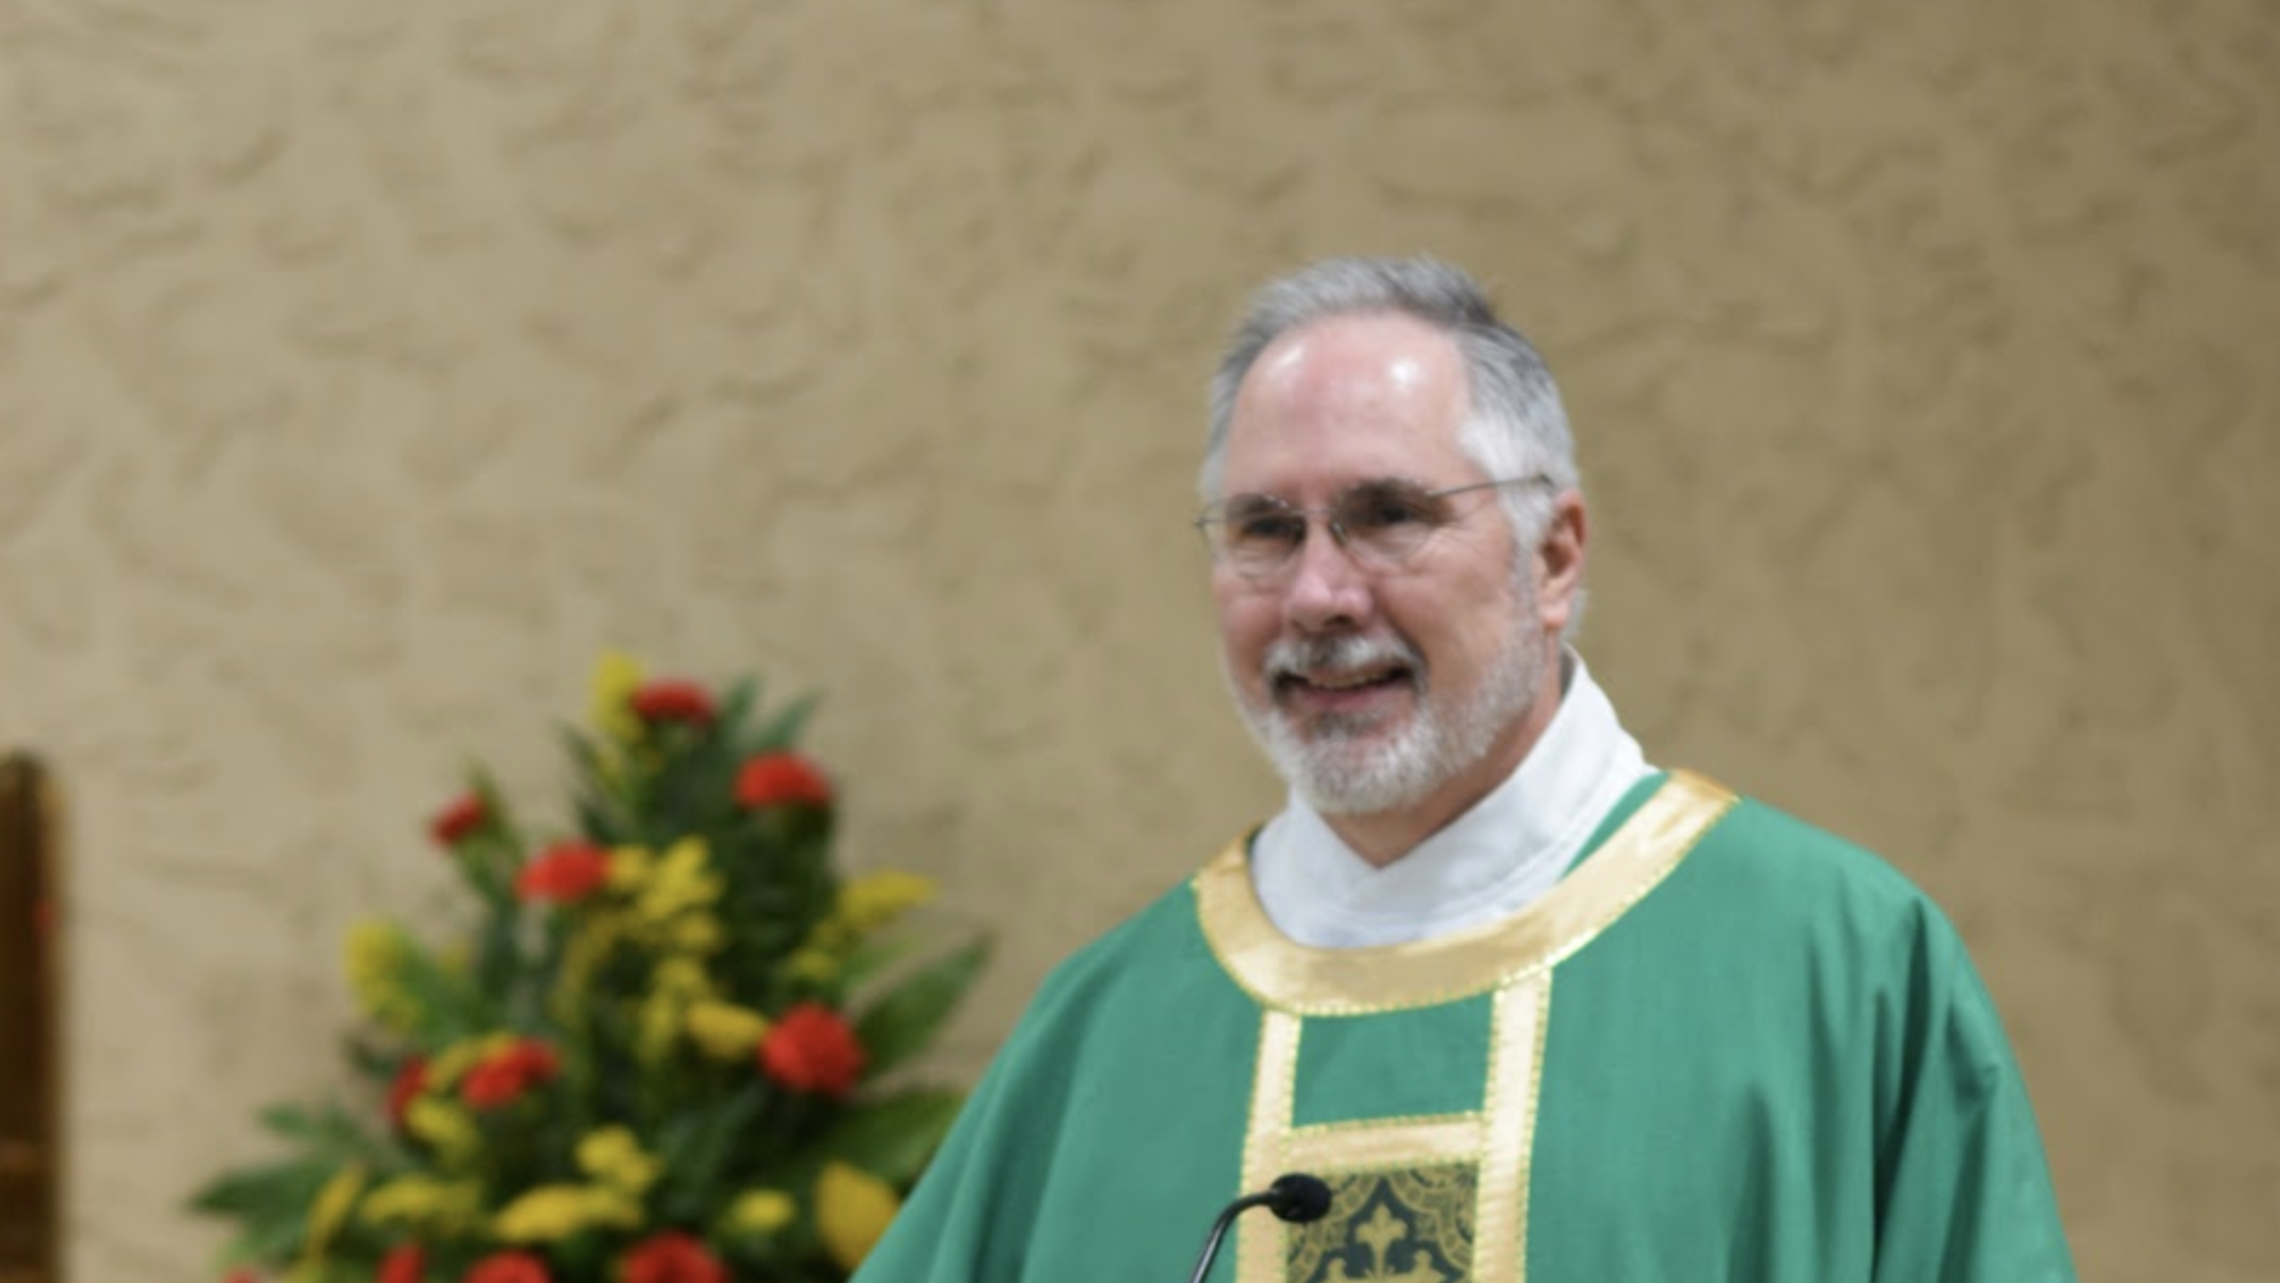 Deacon Jeff Homily